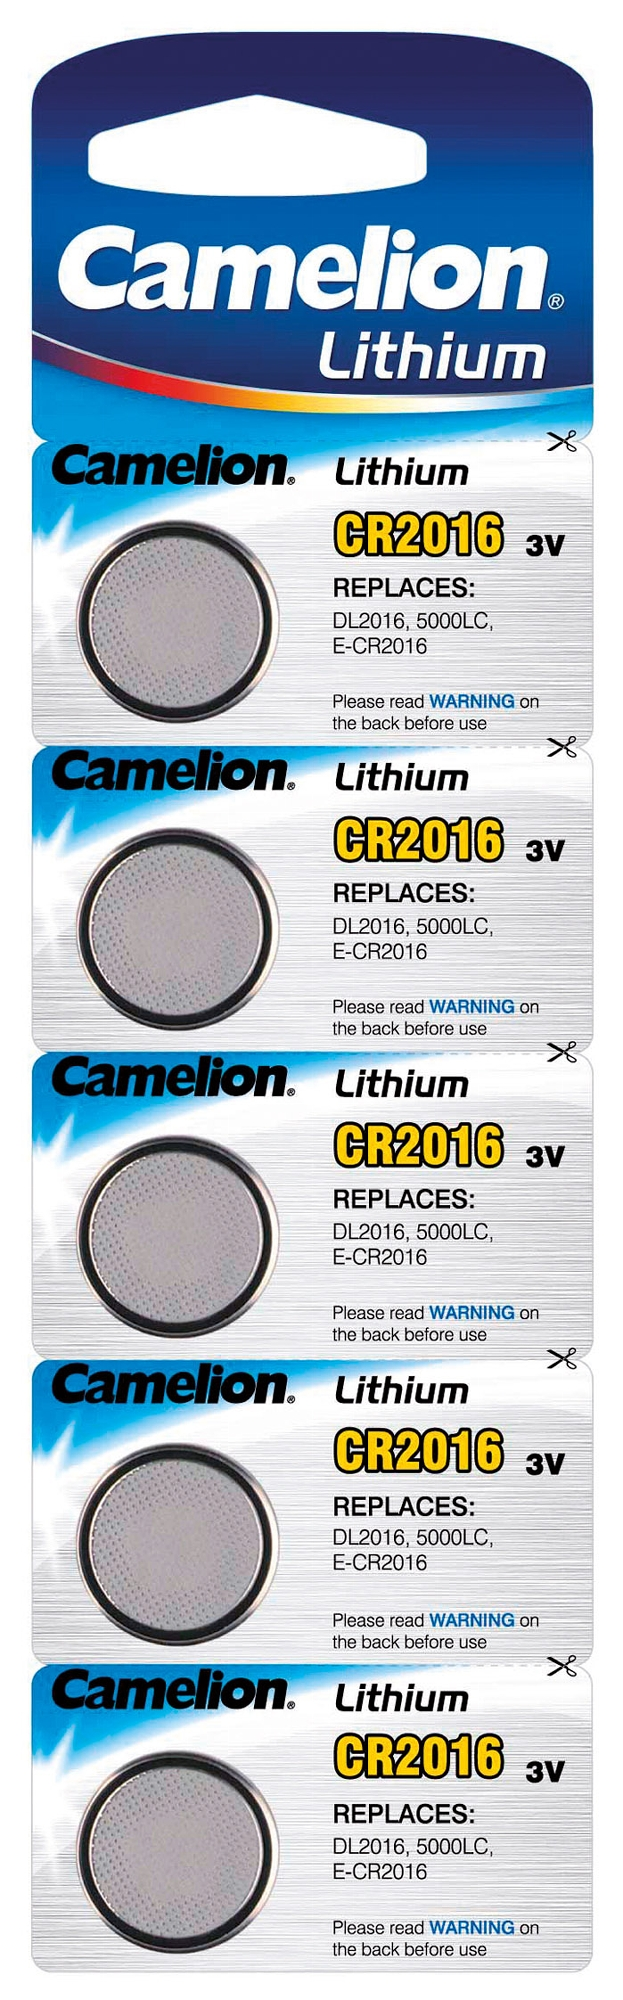 Lithium Knopfzelle CAMELION CR2016 3V, 12x1,5mm, 5er-Blister